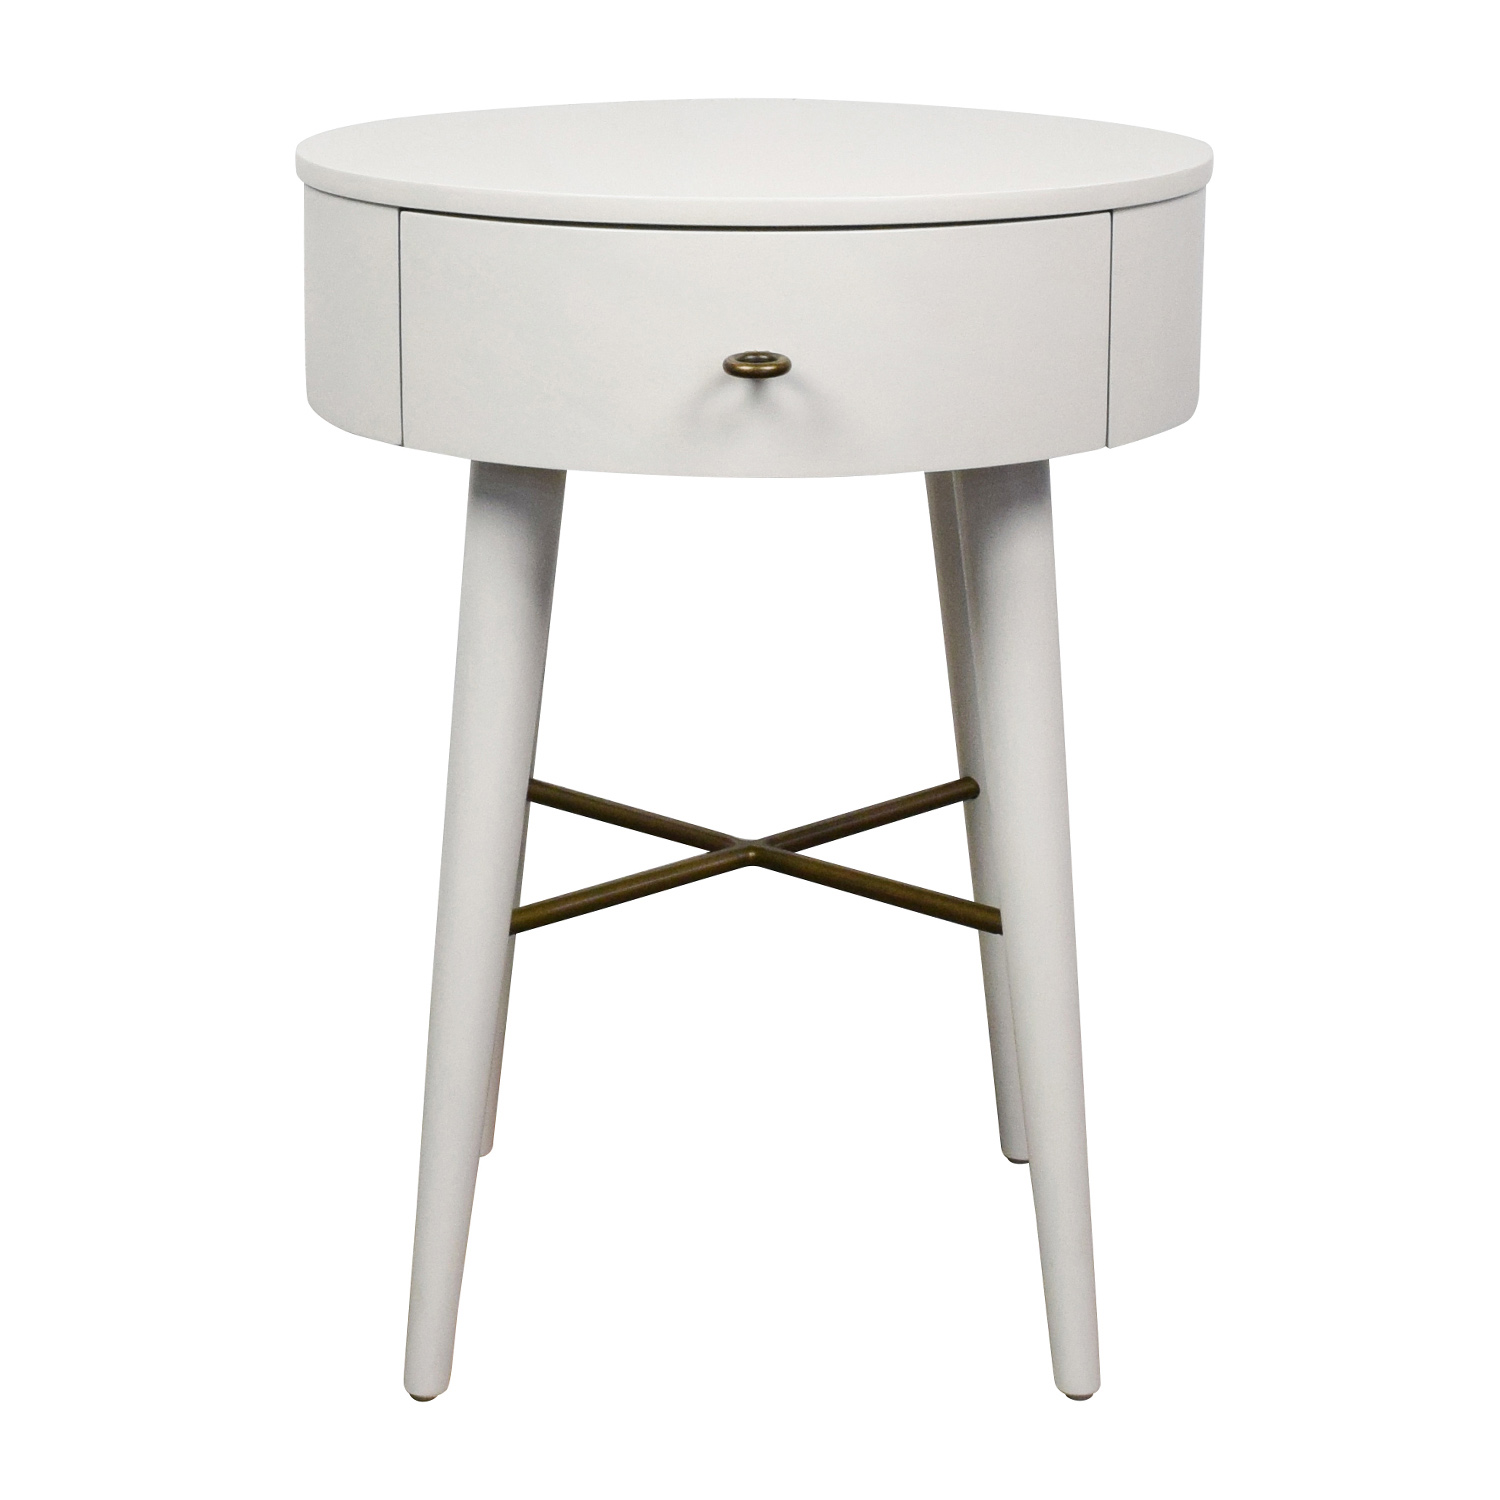 61 Off West Elm West Elm Penelope White Round Nightstand Tables